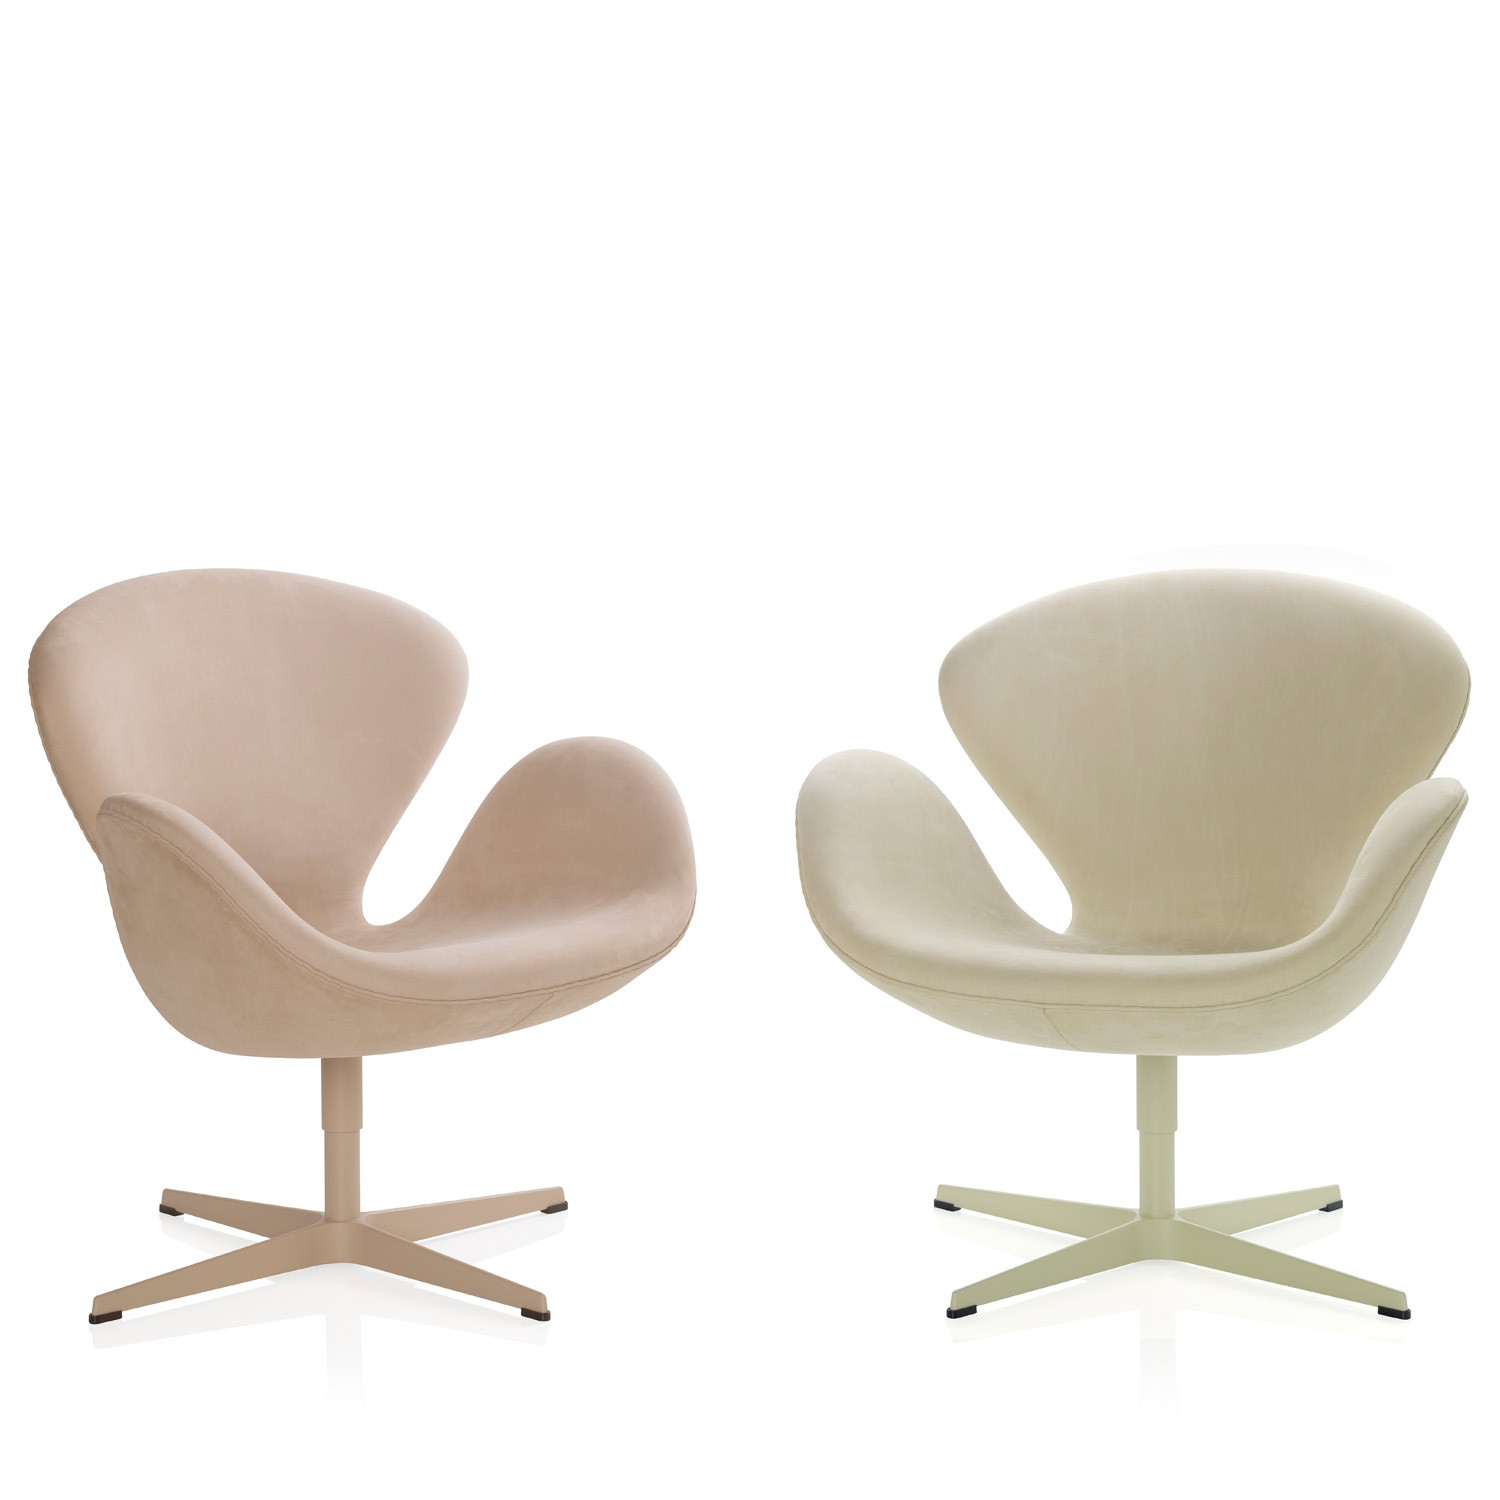 Swan Chairs b Arne Jacobsen